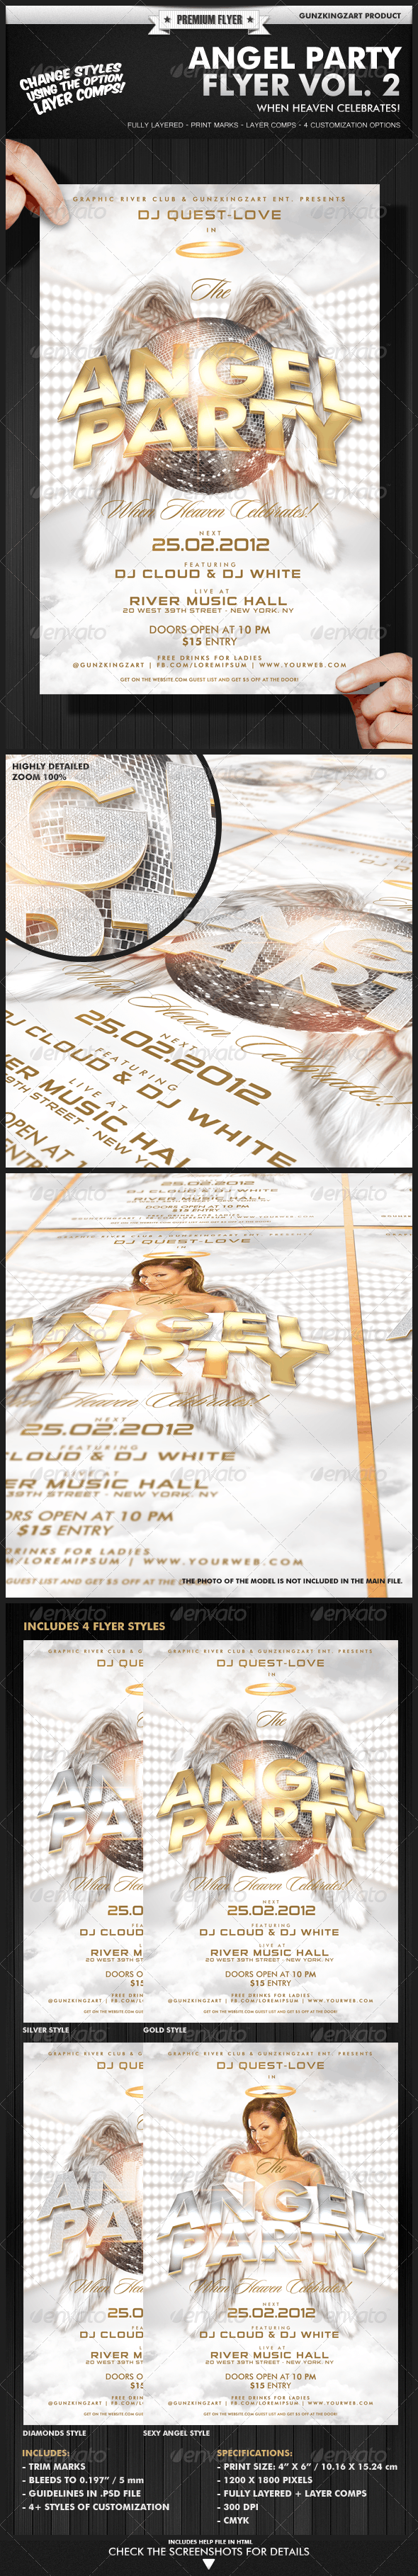 Angel Party Flyer Vol. 2 - Clubs & Parties Events